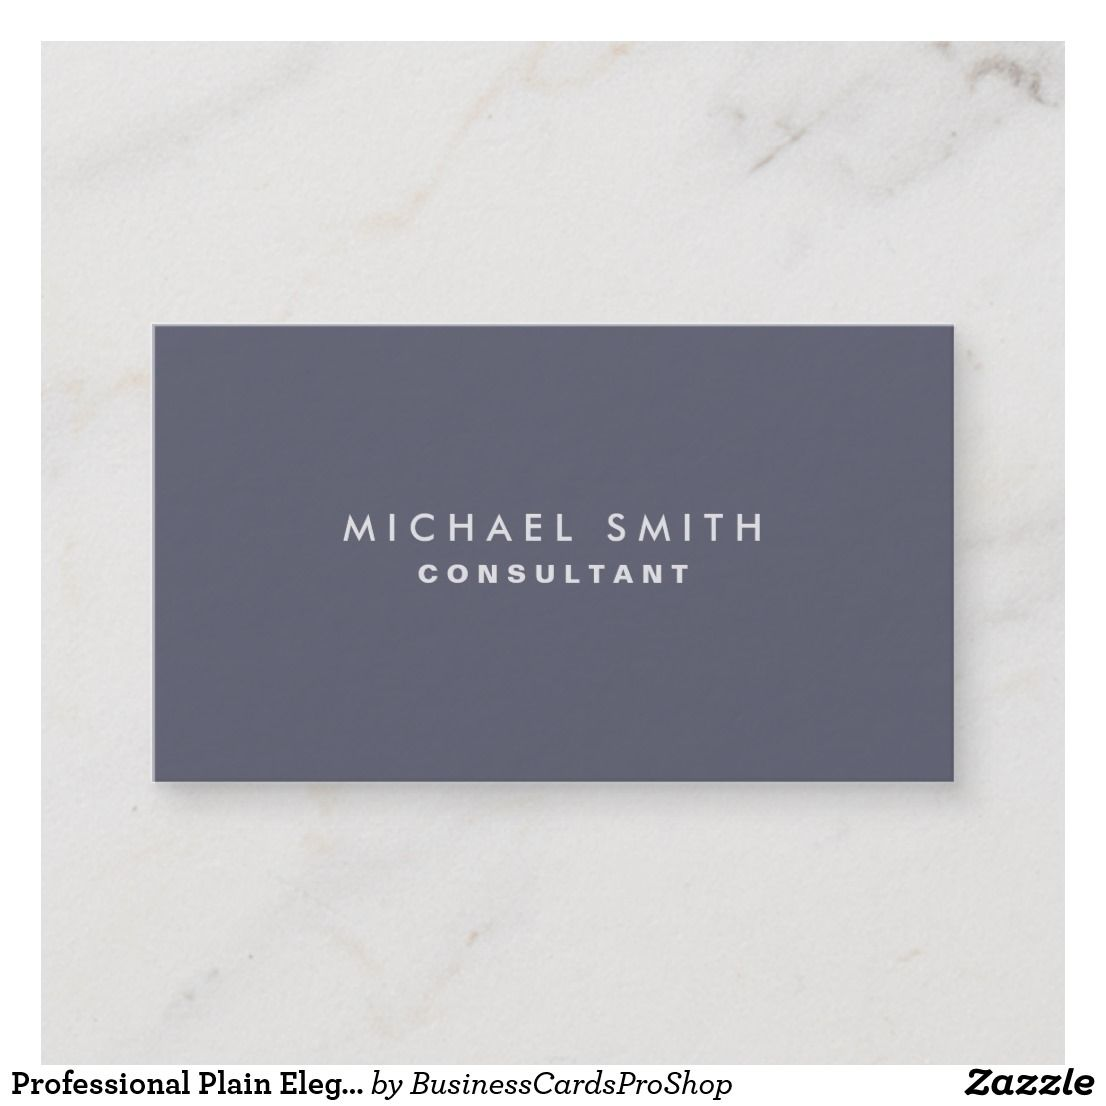 Professional plain elegant interior decorator gray business card also rh in pinterest